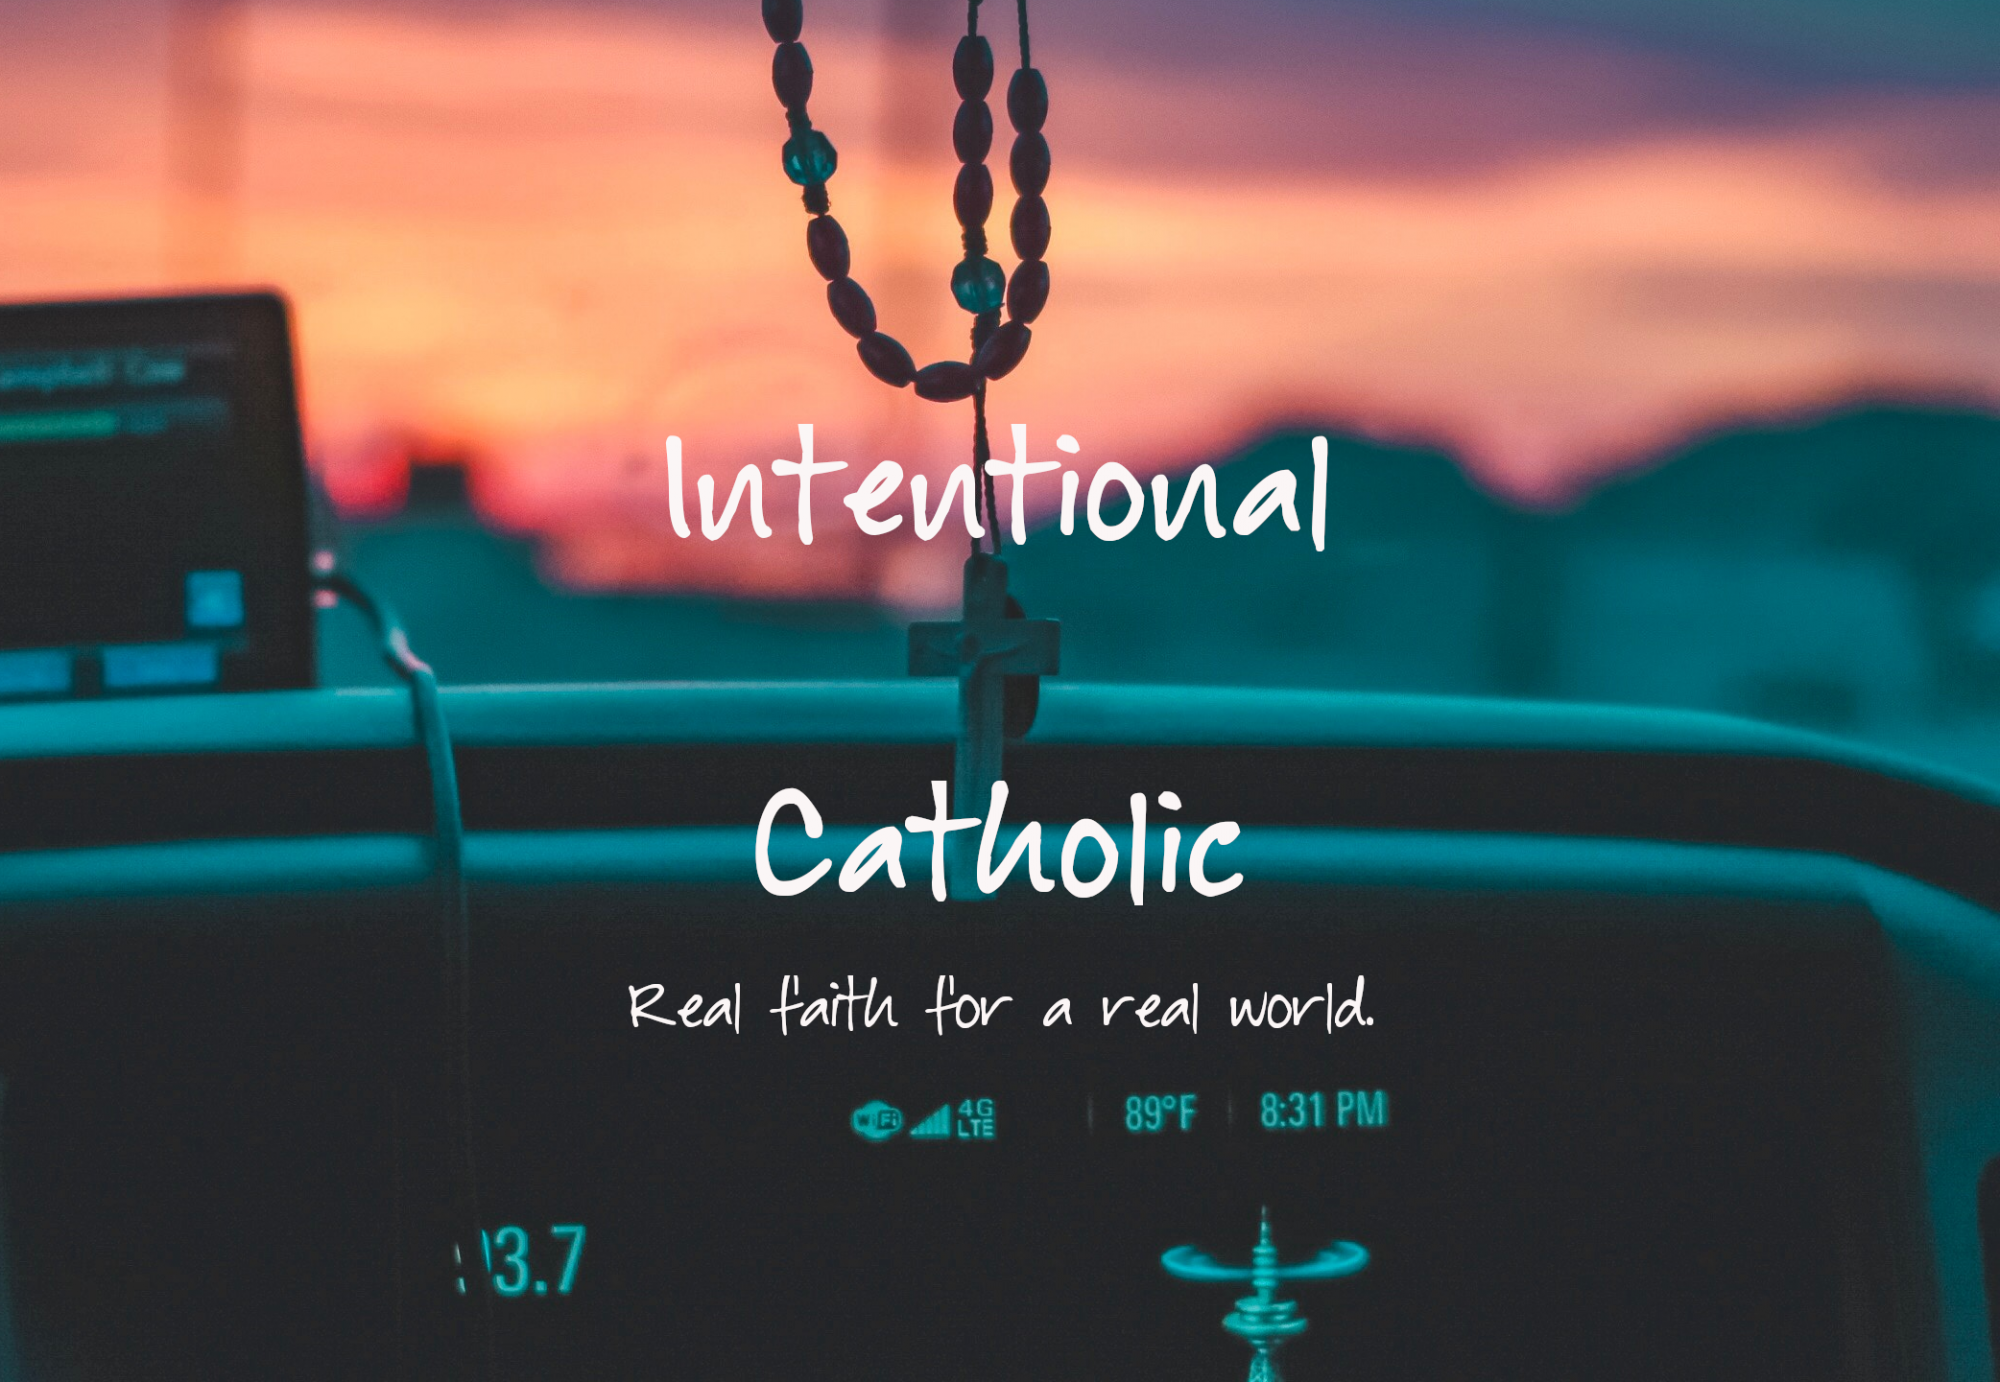 Intentional Catholic